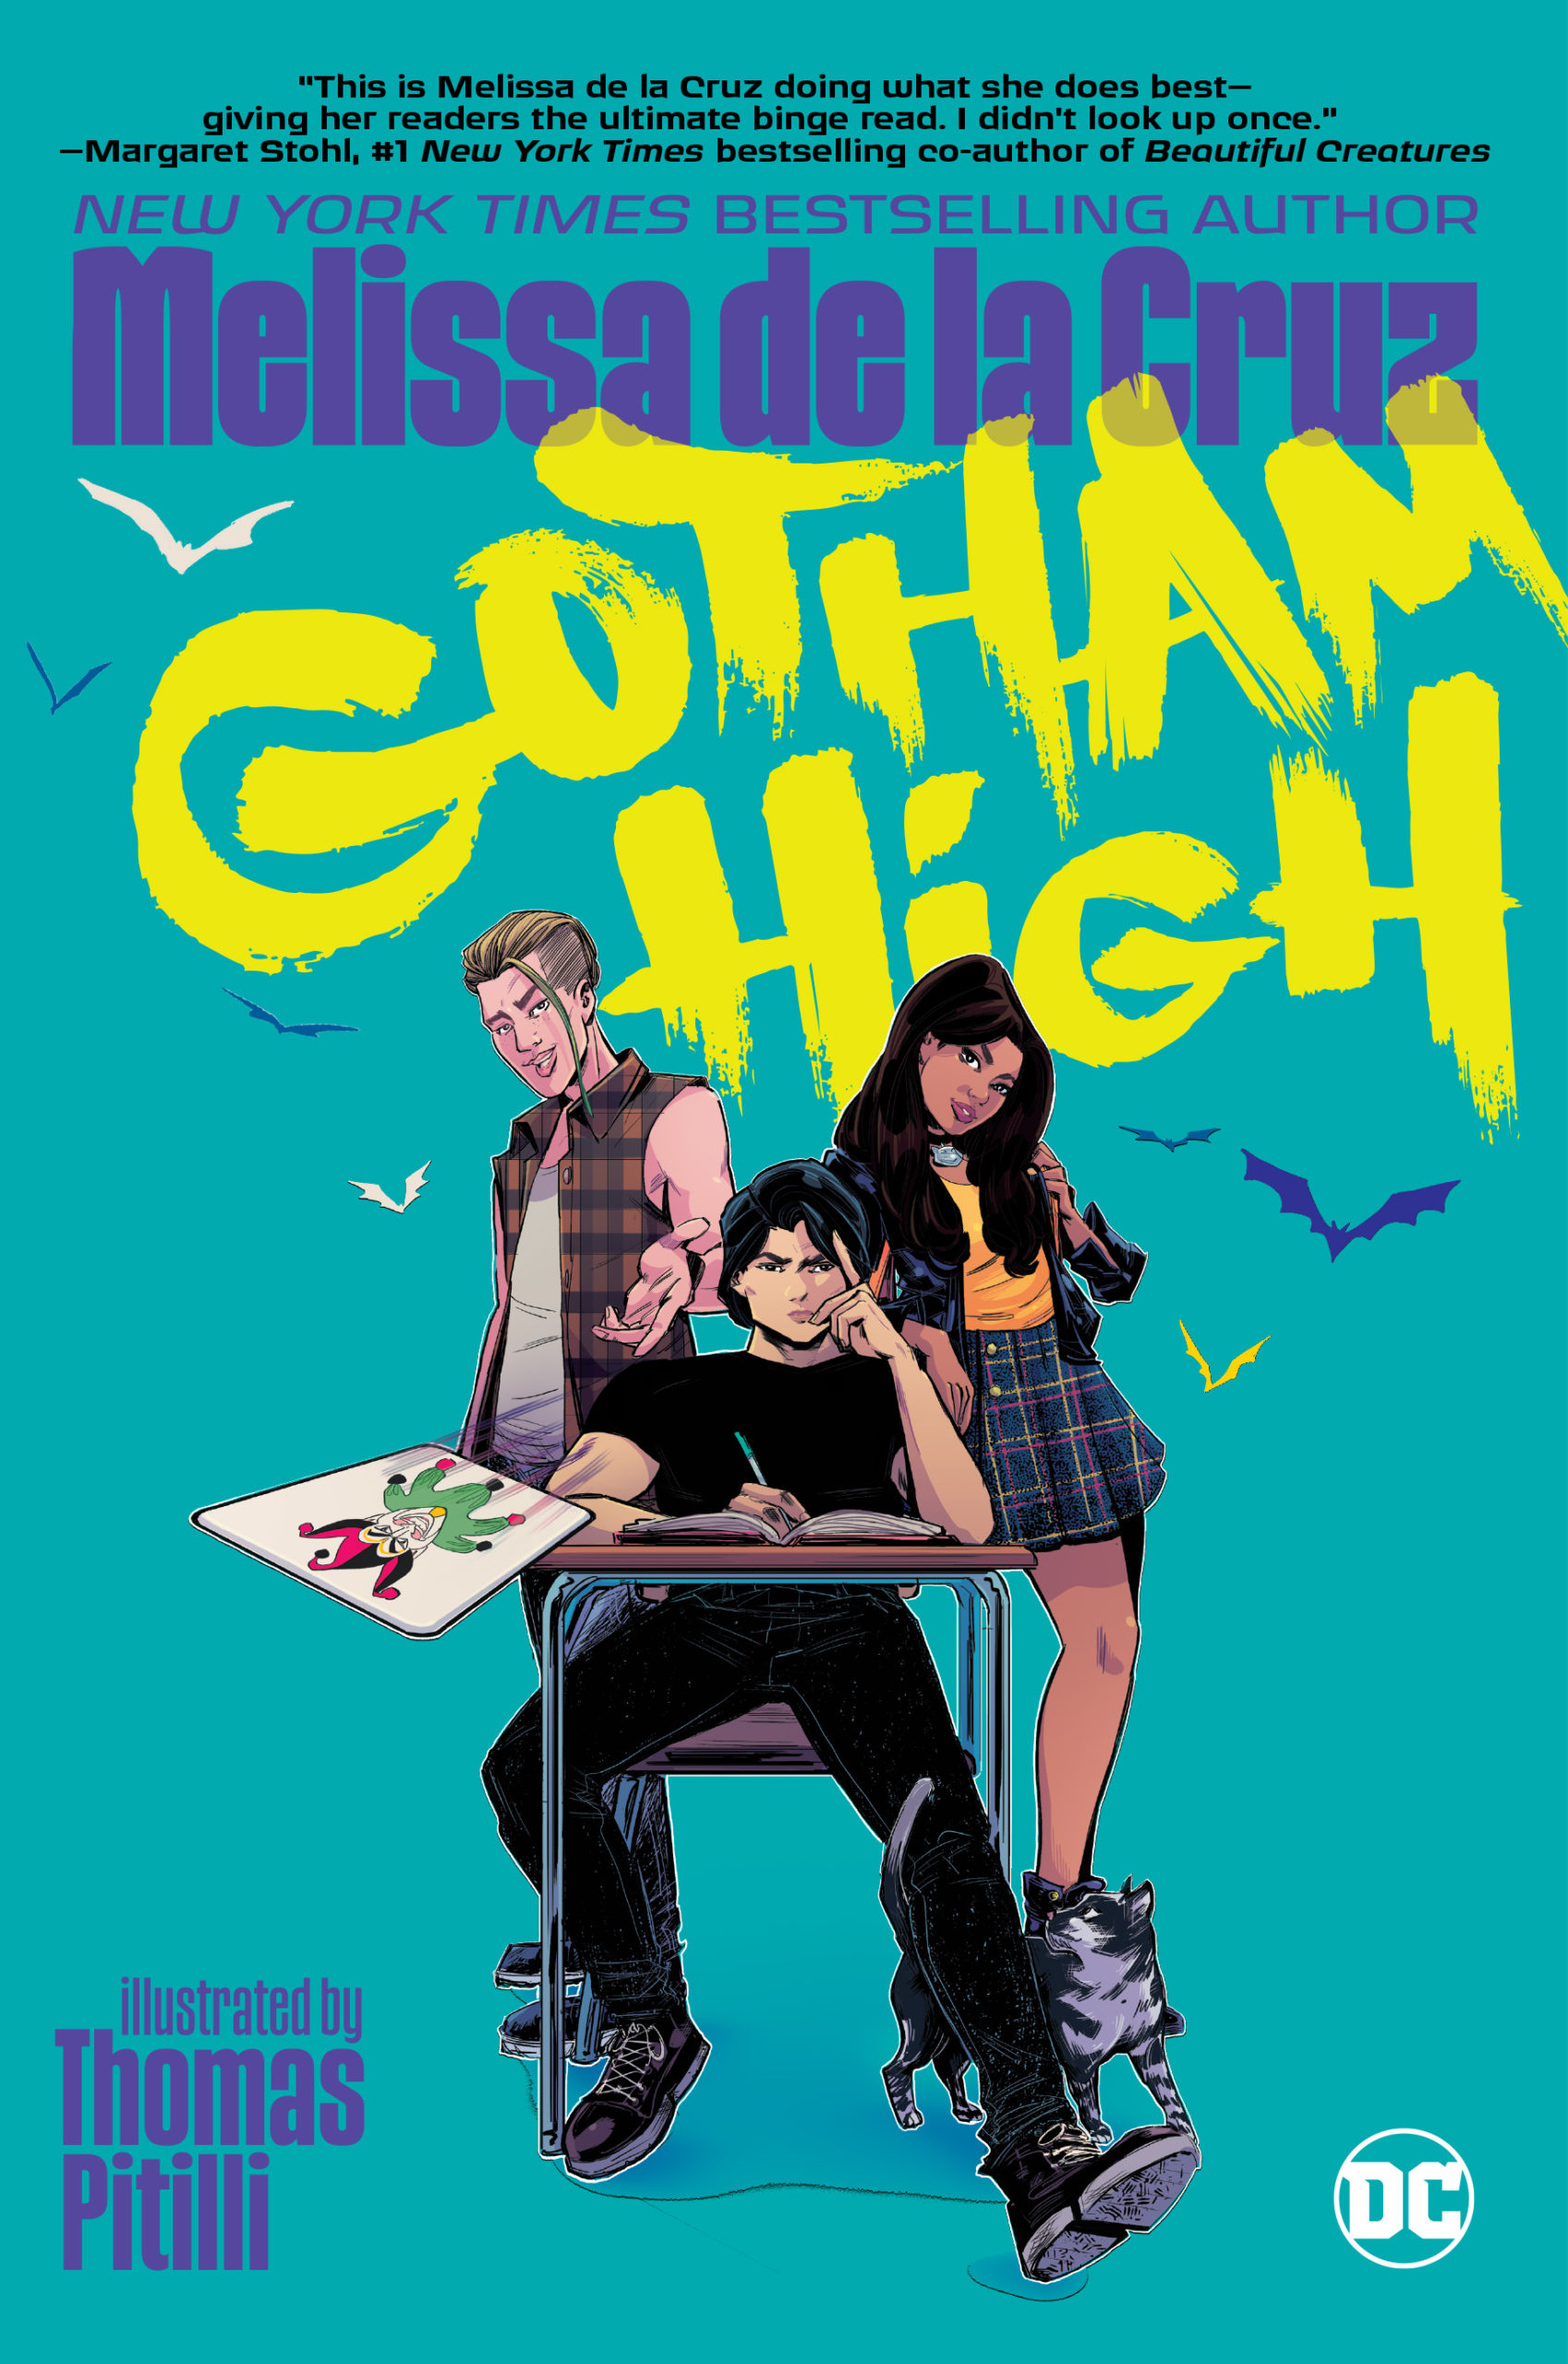 The Batman adaptaiton moves the story to a high school